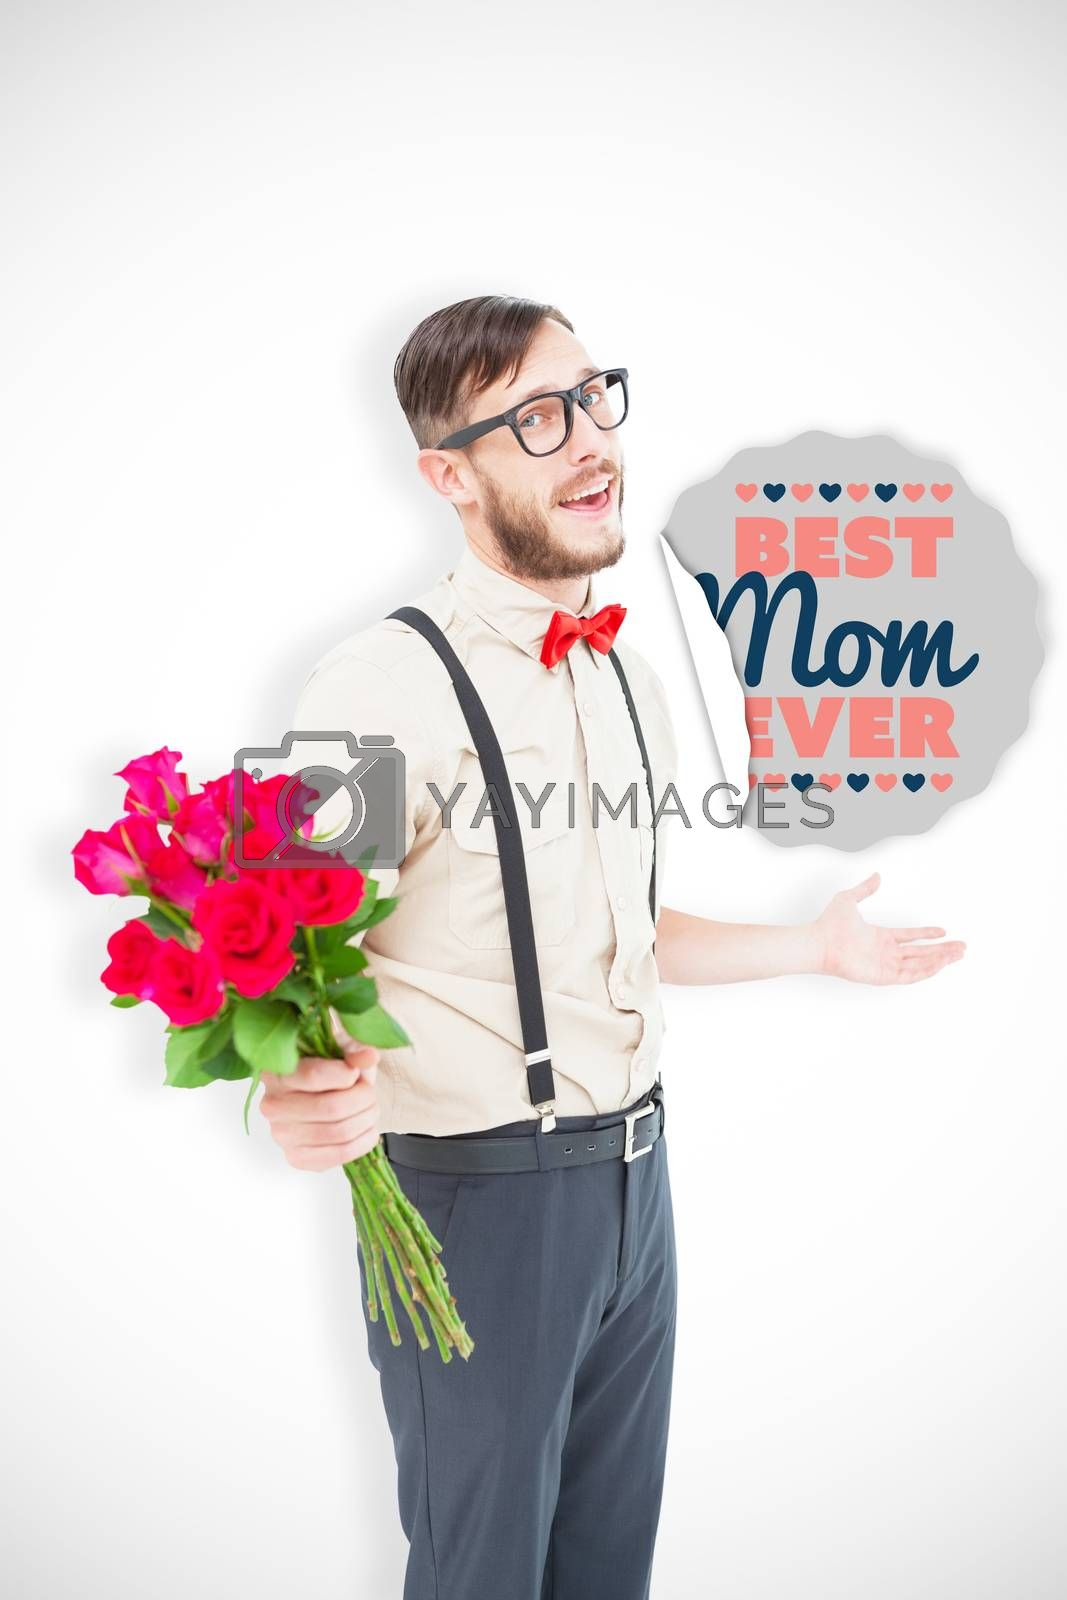 Geeky hipster offering bunch of roses against best mom ever